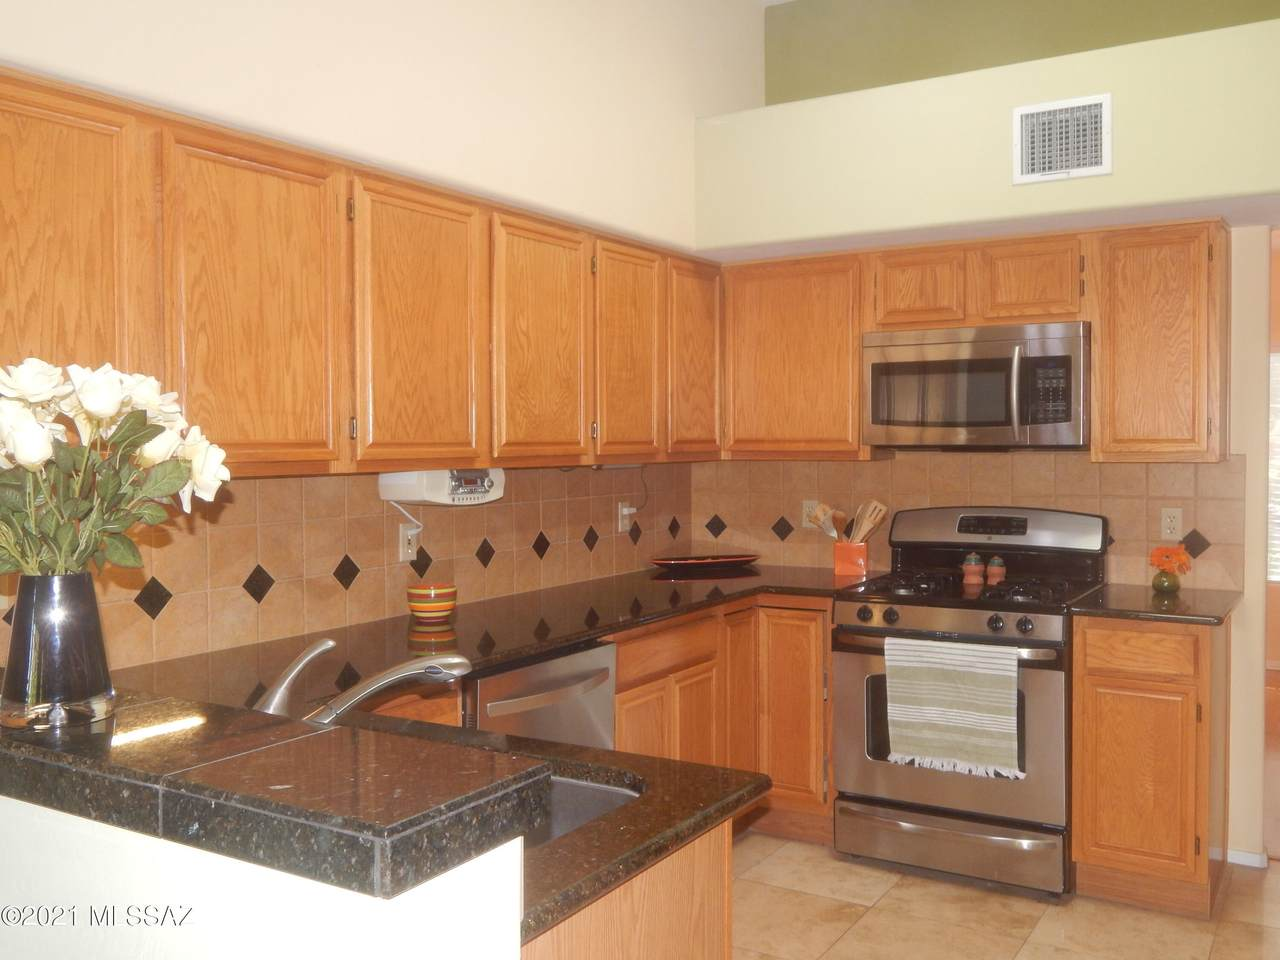 760 Annandale Way - Photo 1